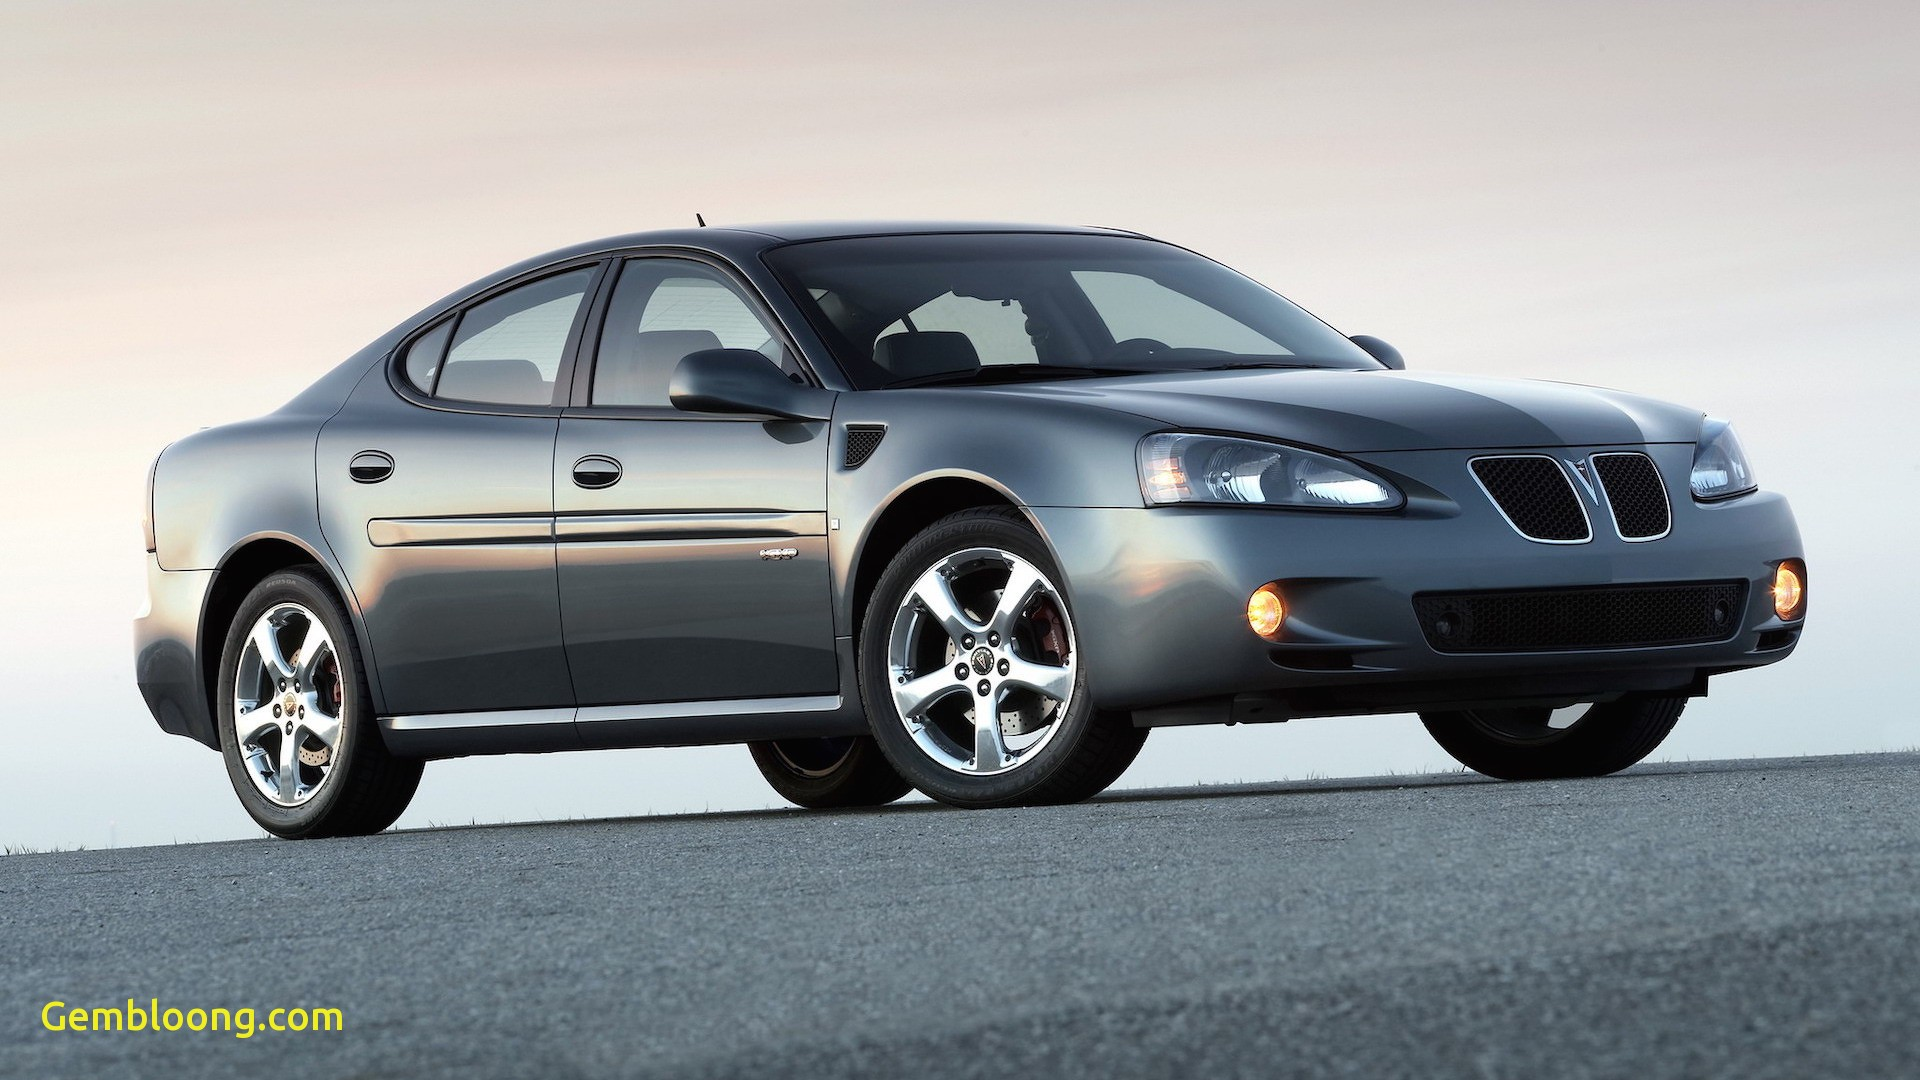 300 hp cars under 300 horsepower cars you can snag for under $10 000 from cars for sale near me less than 2000